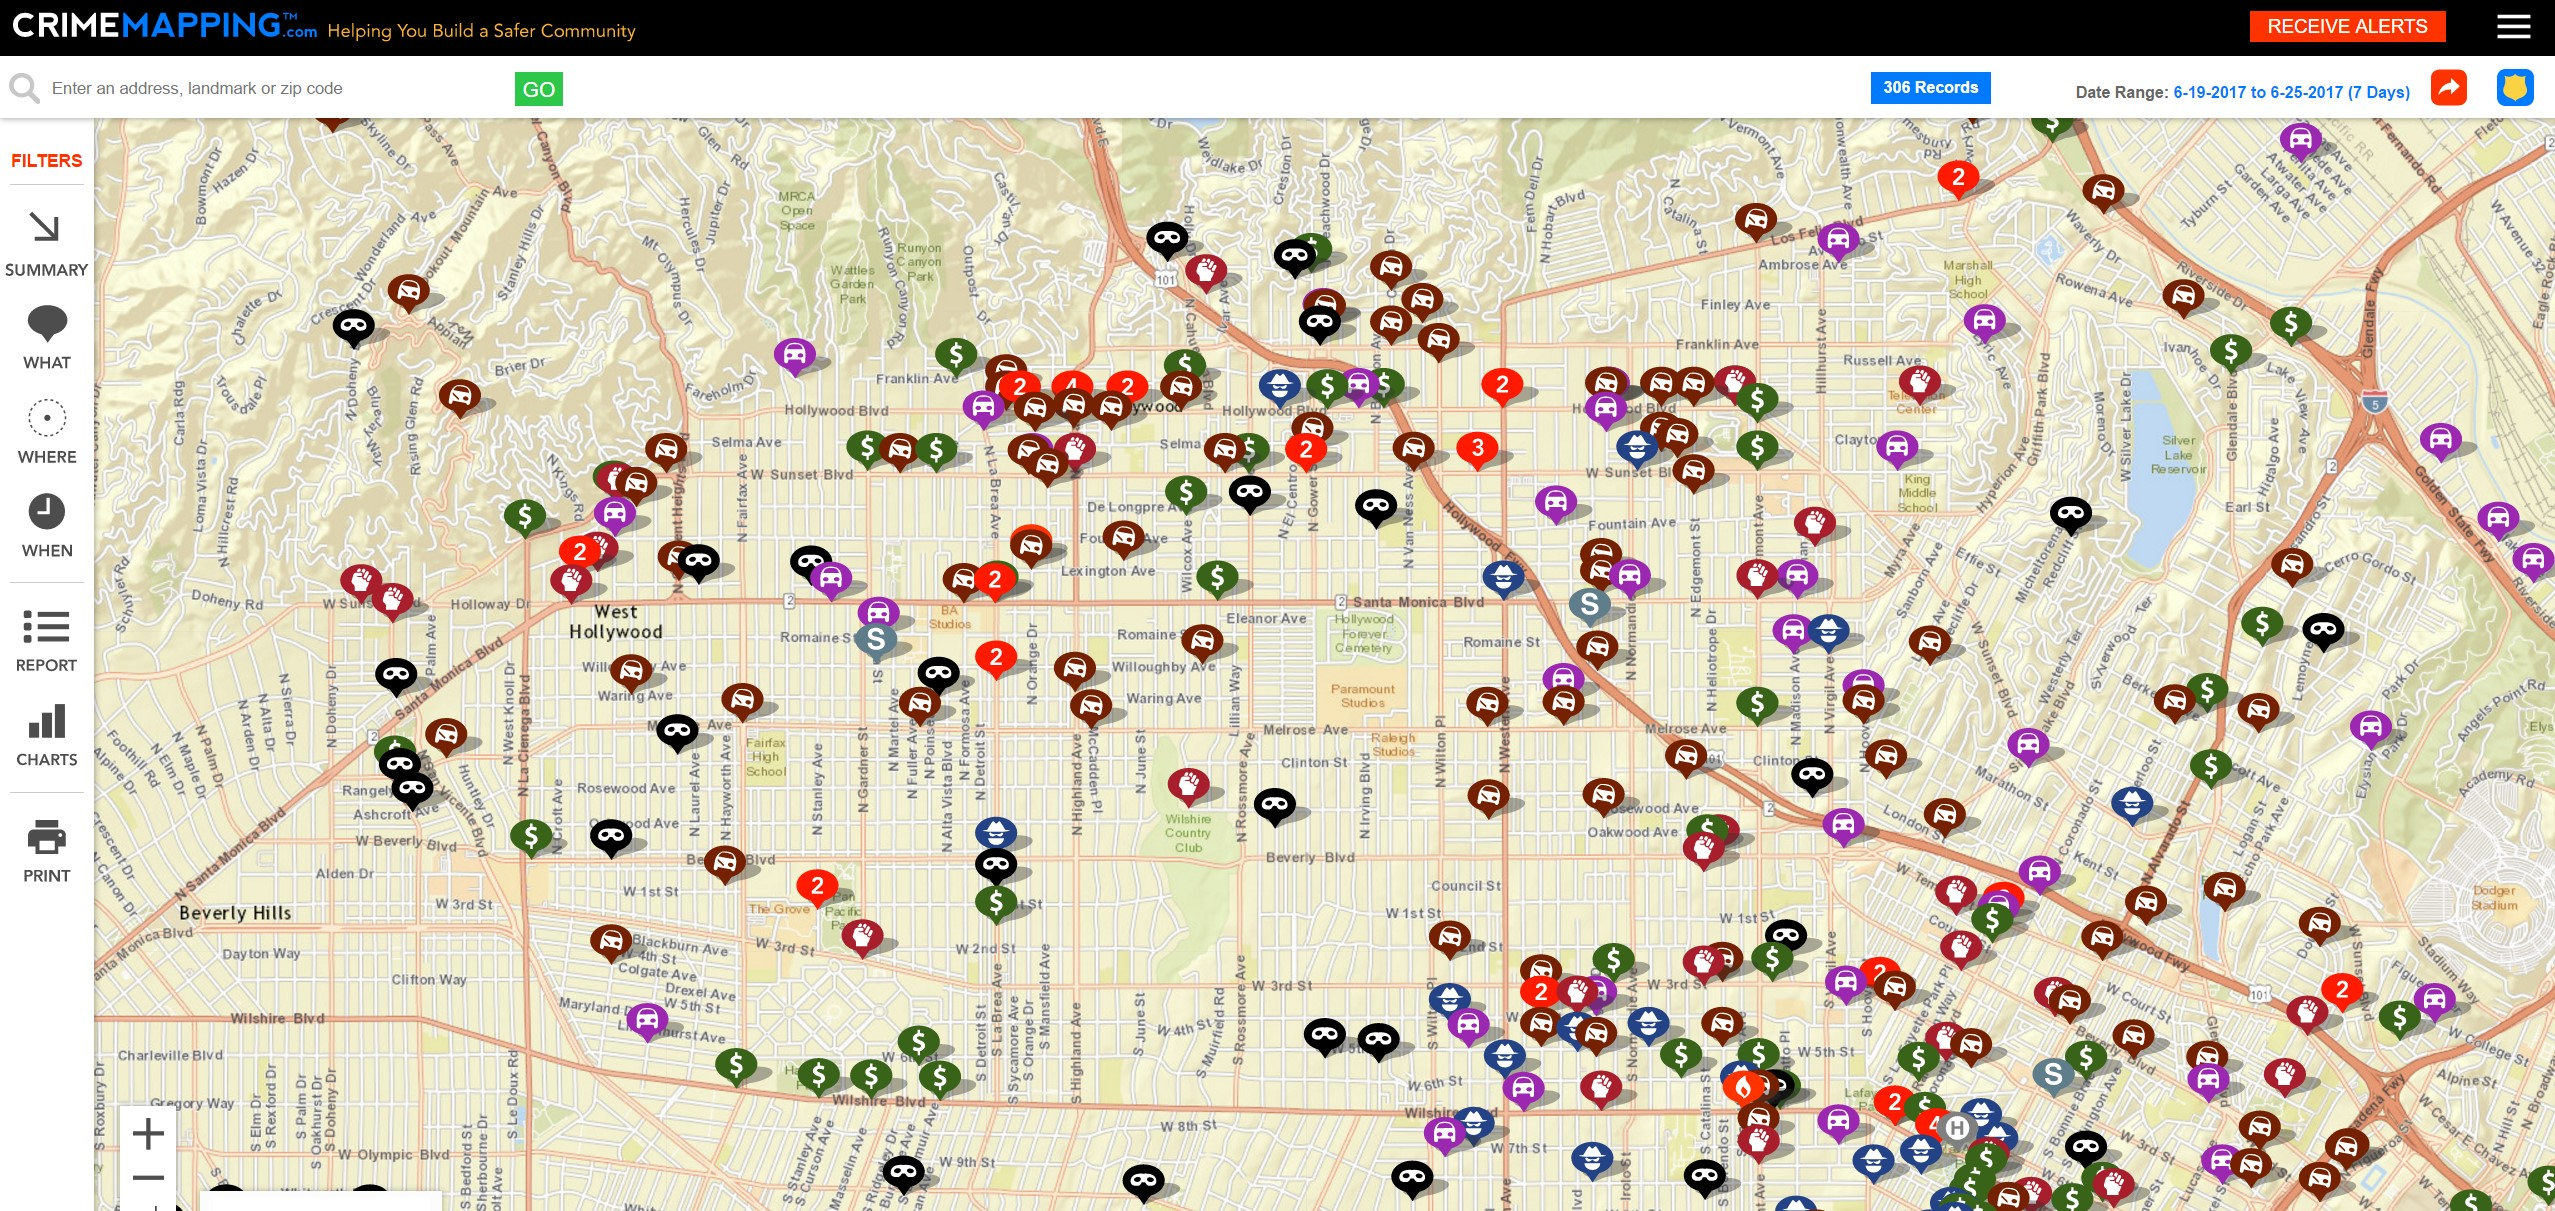 Crime Map in Los Angeles